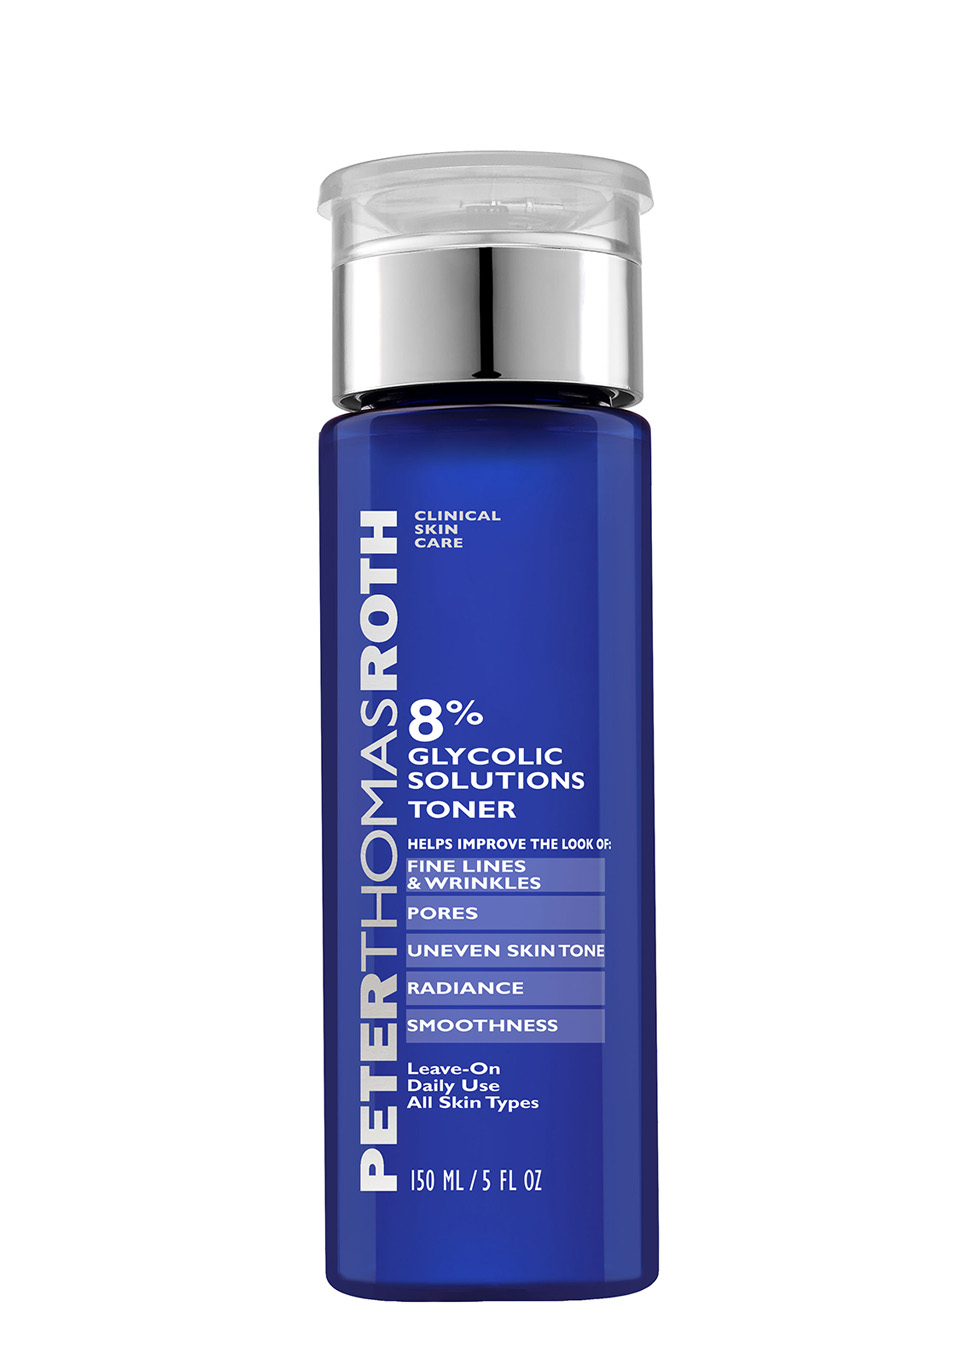 Glycolic Solutions Toner